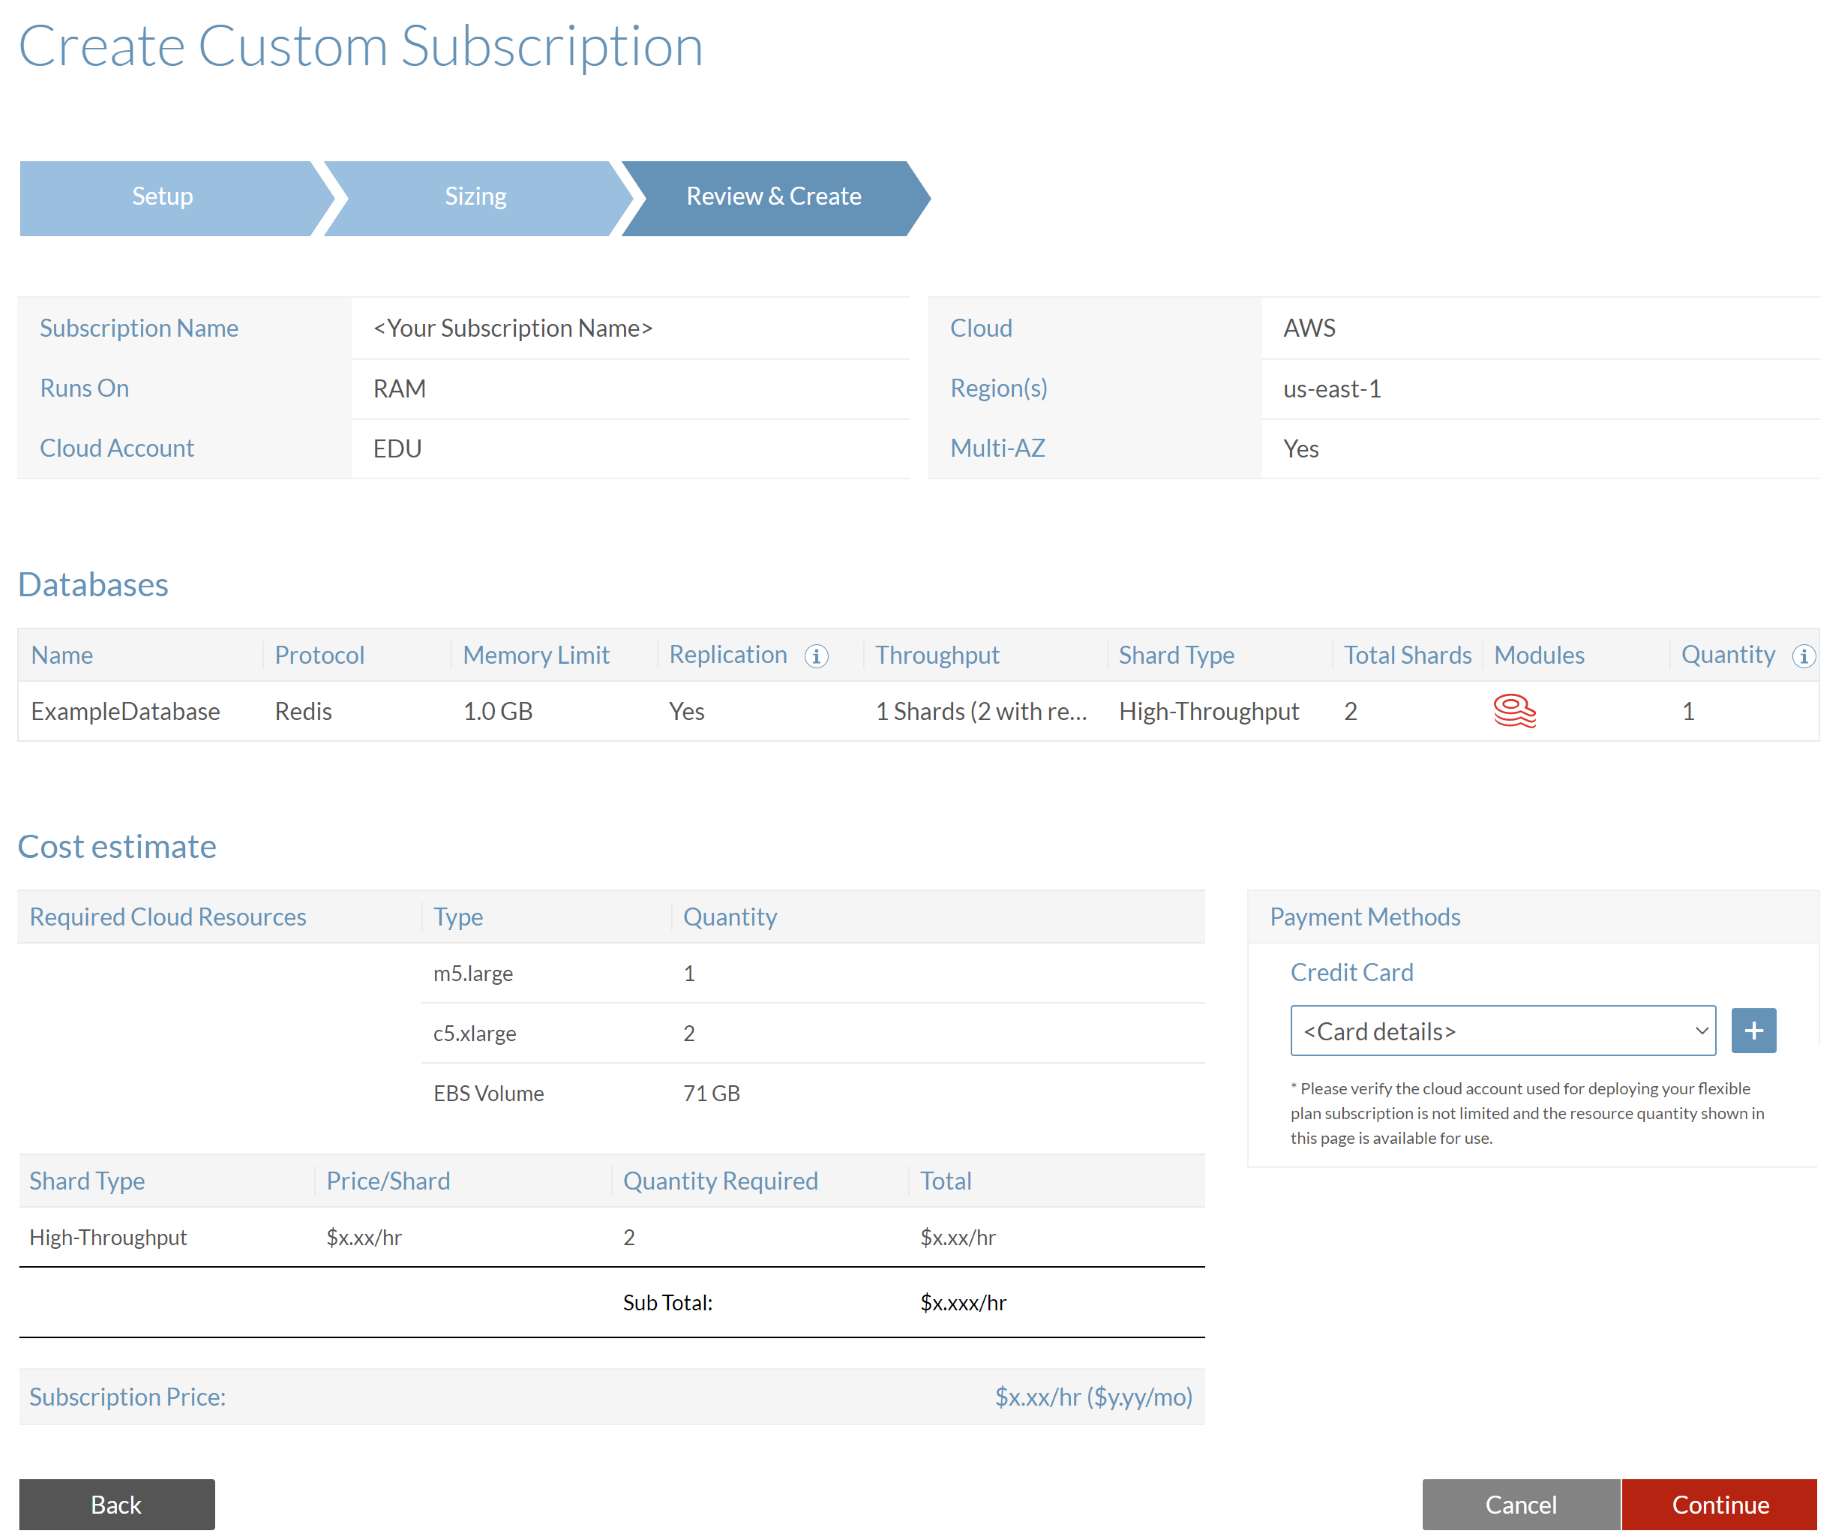 The **Review & Create** tab of the Create Custom Subscription screen.